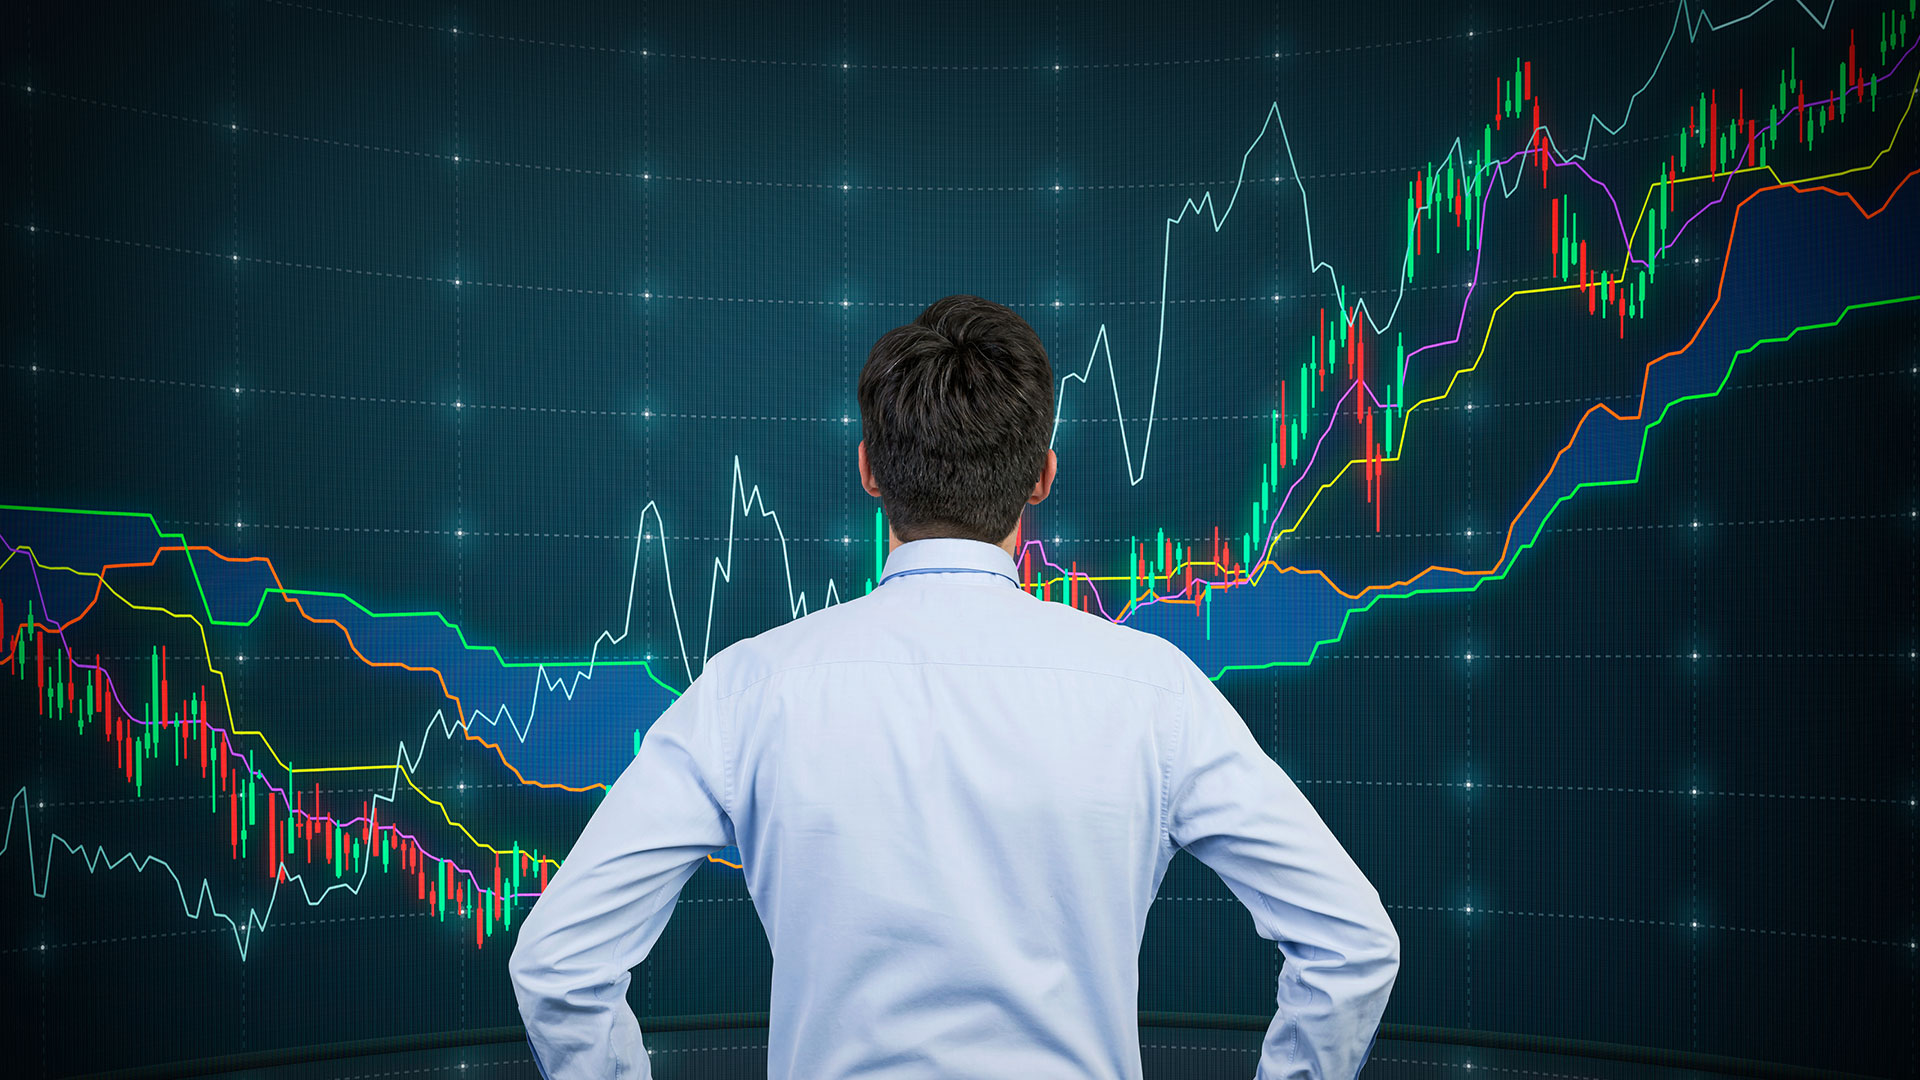 Understand the risks of trading online